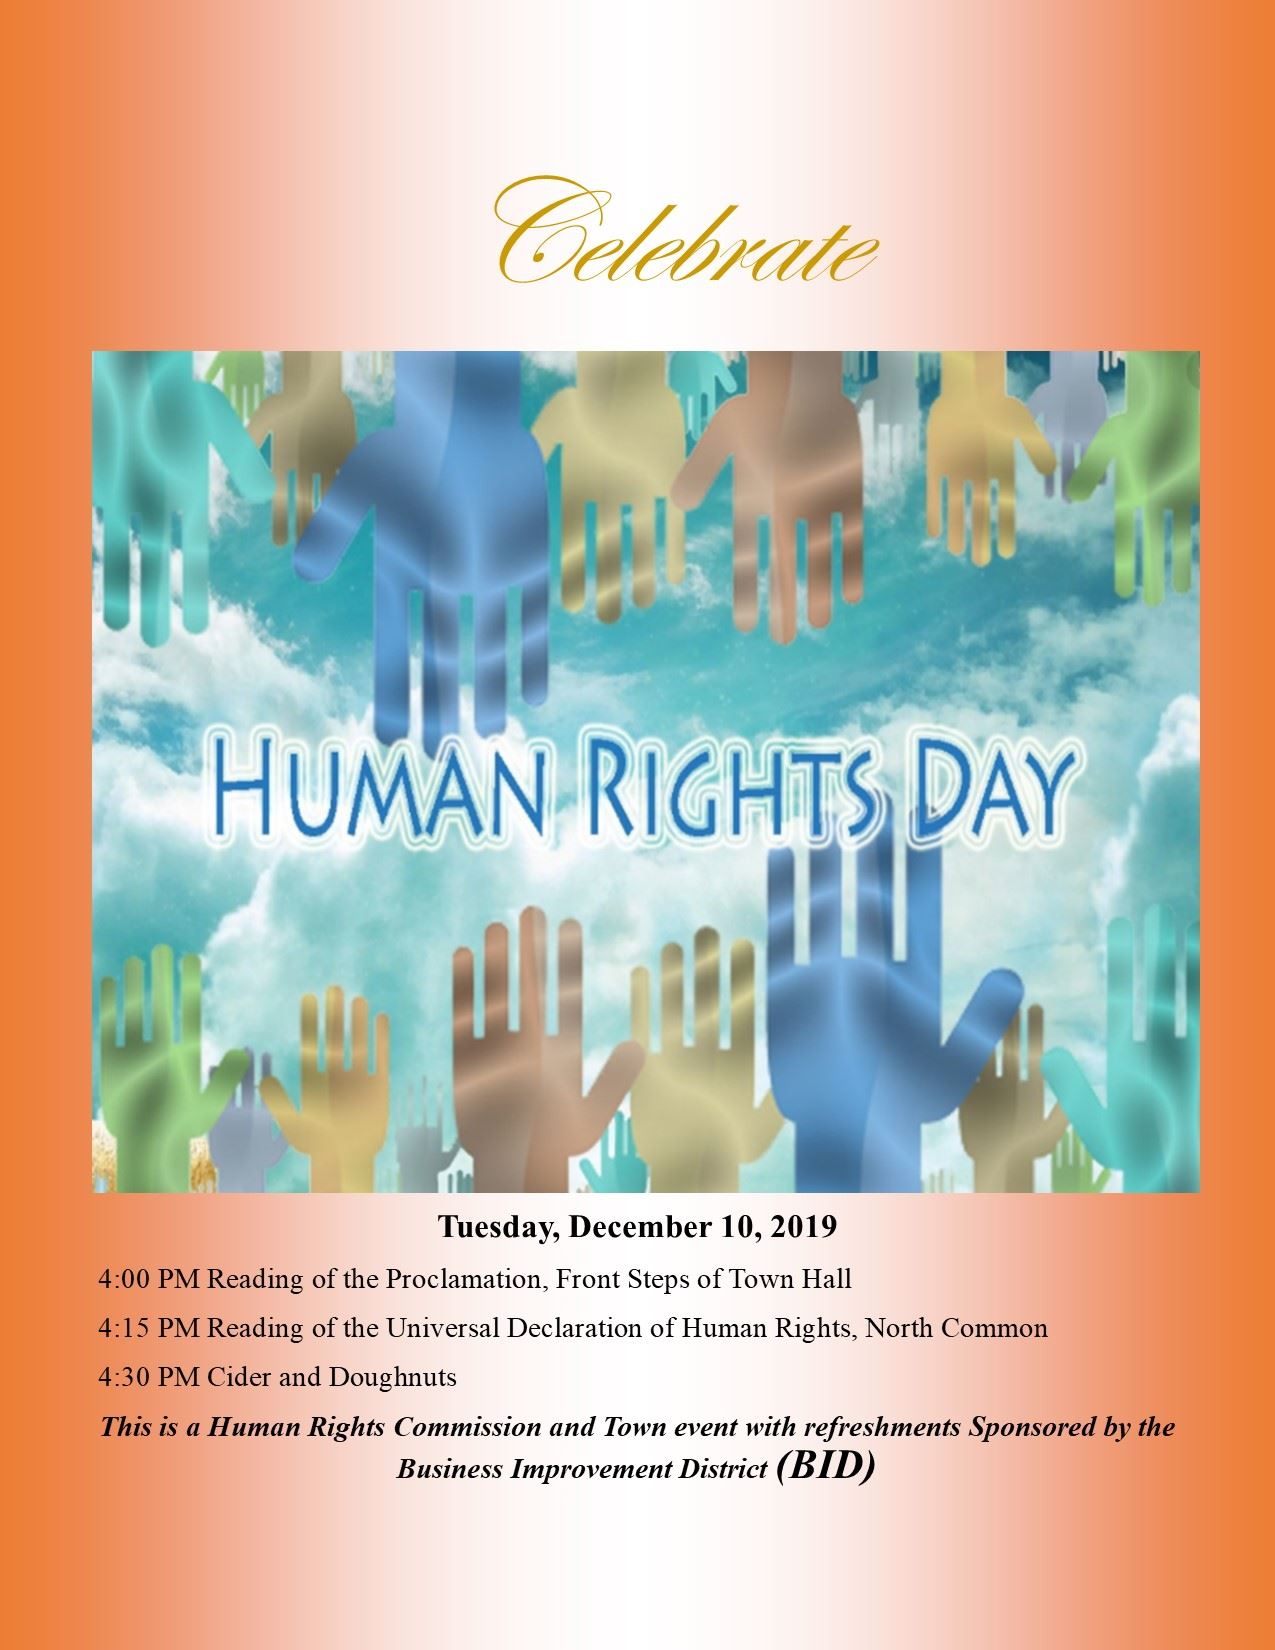 Celebrate Human Rights Day Flyer 11.21.19